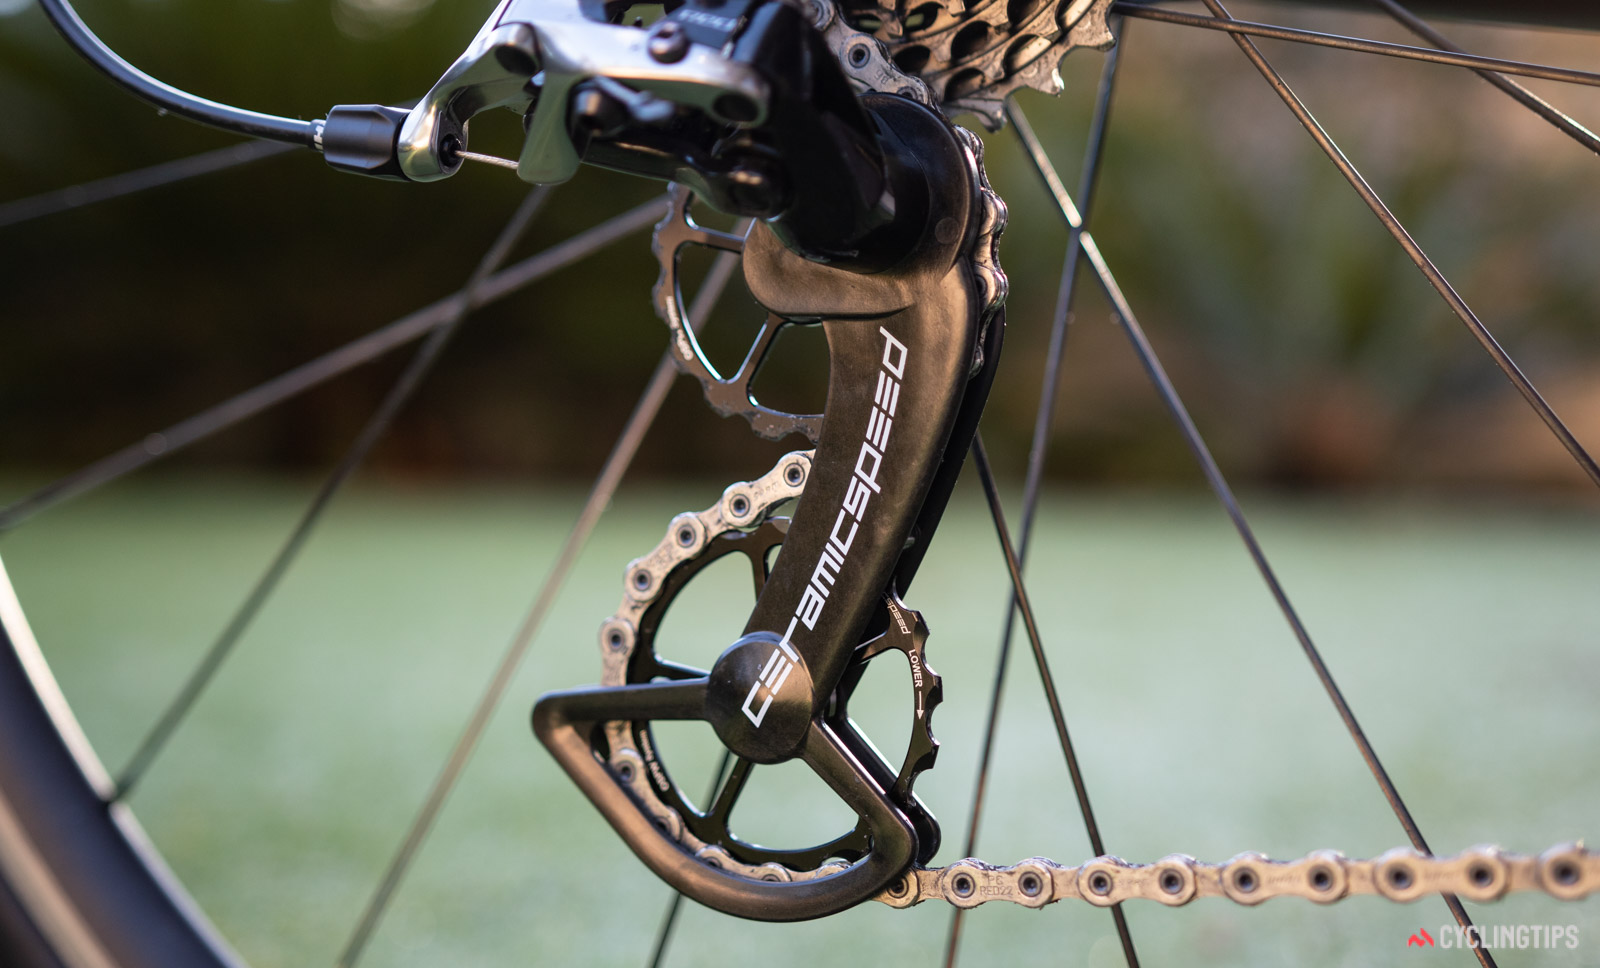 CeramicSpeed-OSPW-oversized-pulley-wheel-system-review-cyclingtips-red-sram-13.jpg